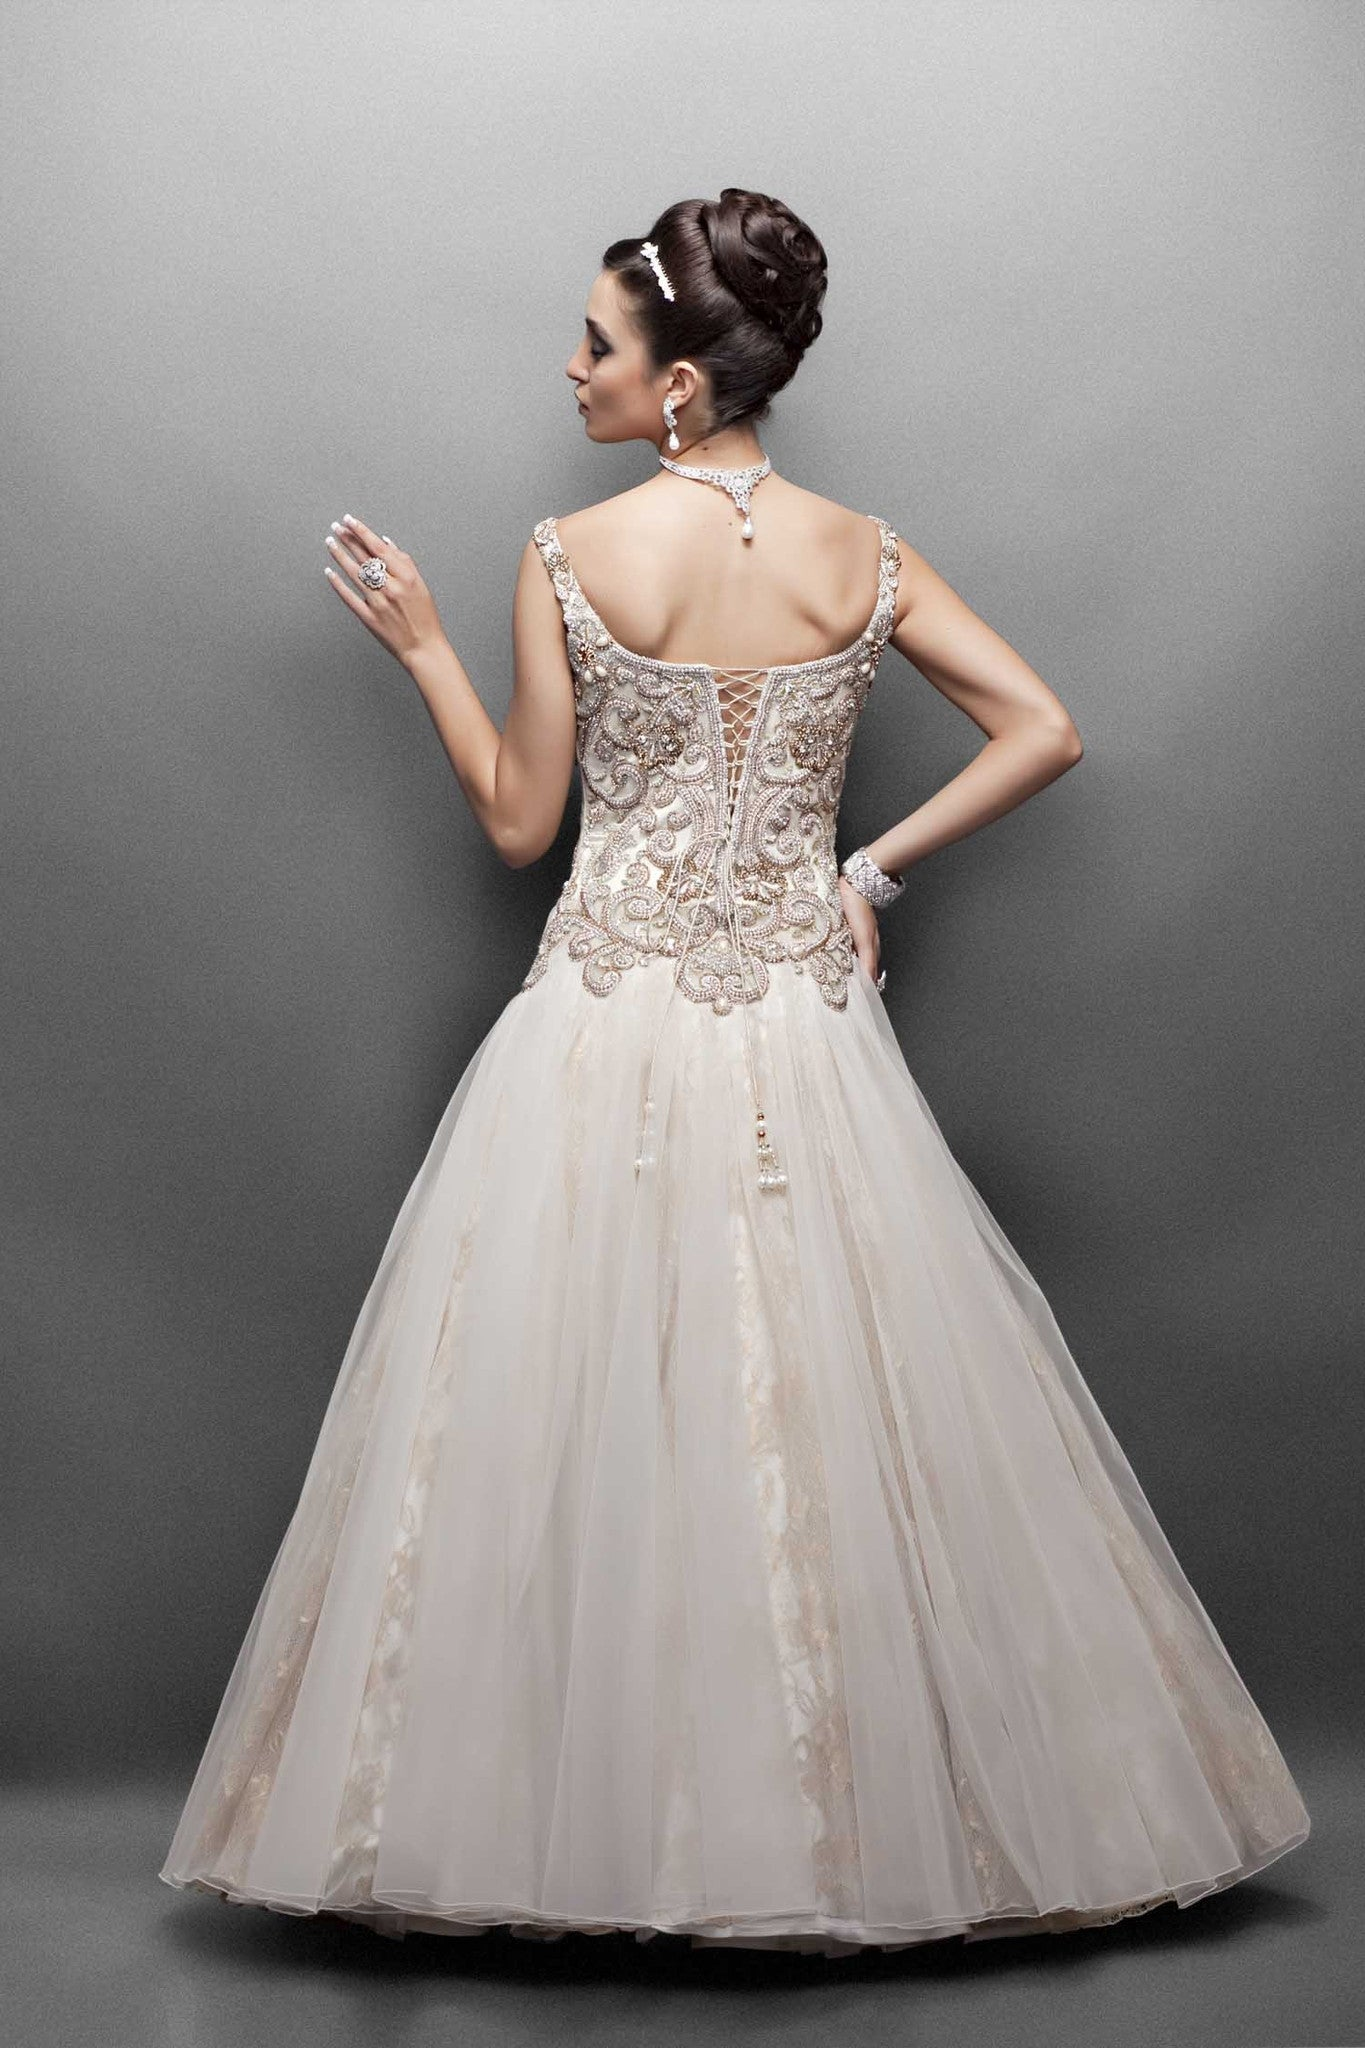 Western Wedding Dresses.Offwhite Color Indo Western Bridal Gown